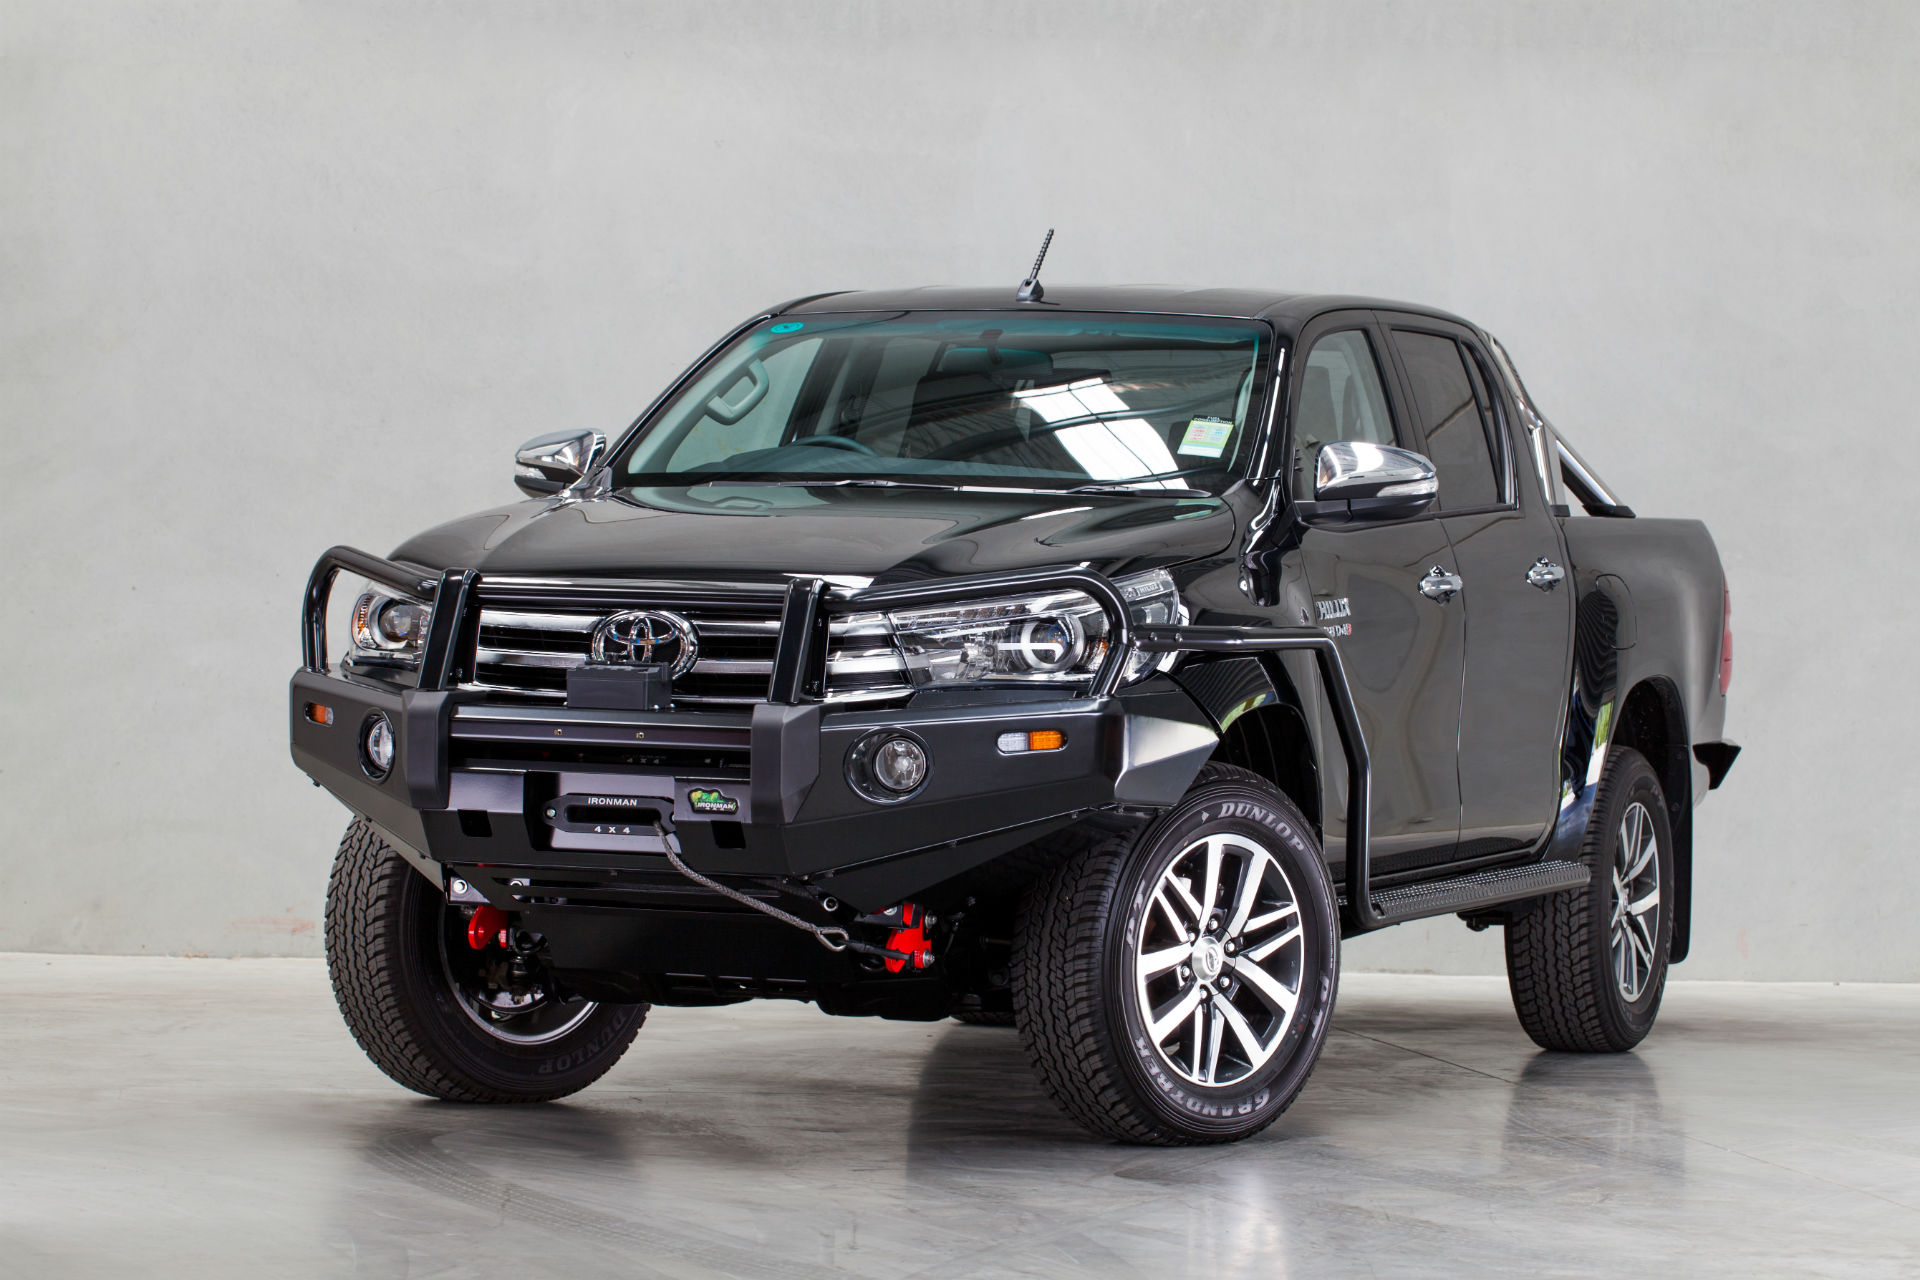 Hilux Revo 2015 Deluxe Commercial Bull Bar Ironman 4x4 Nz